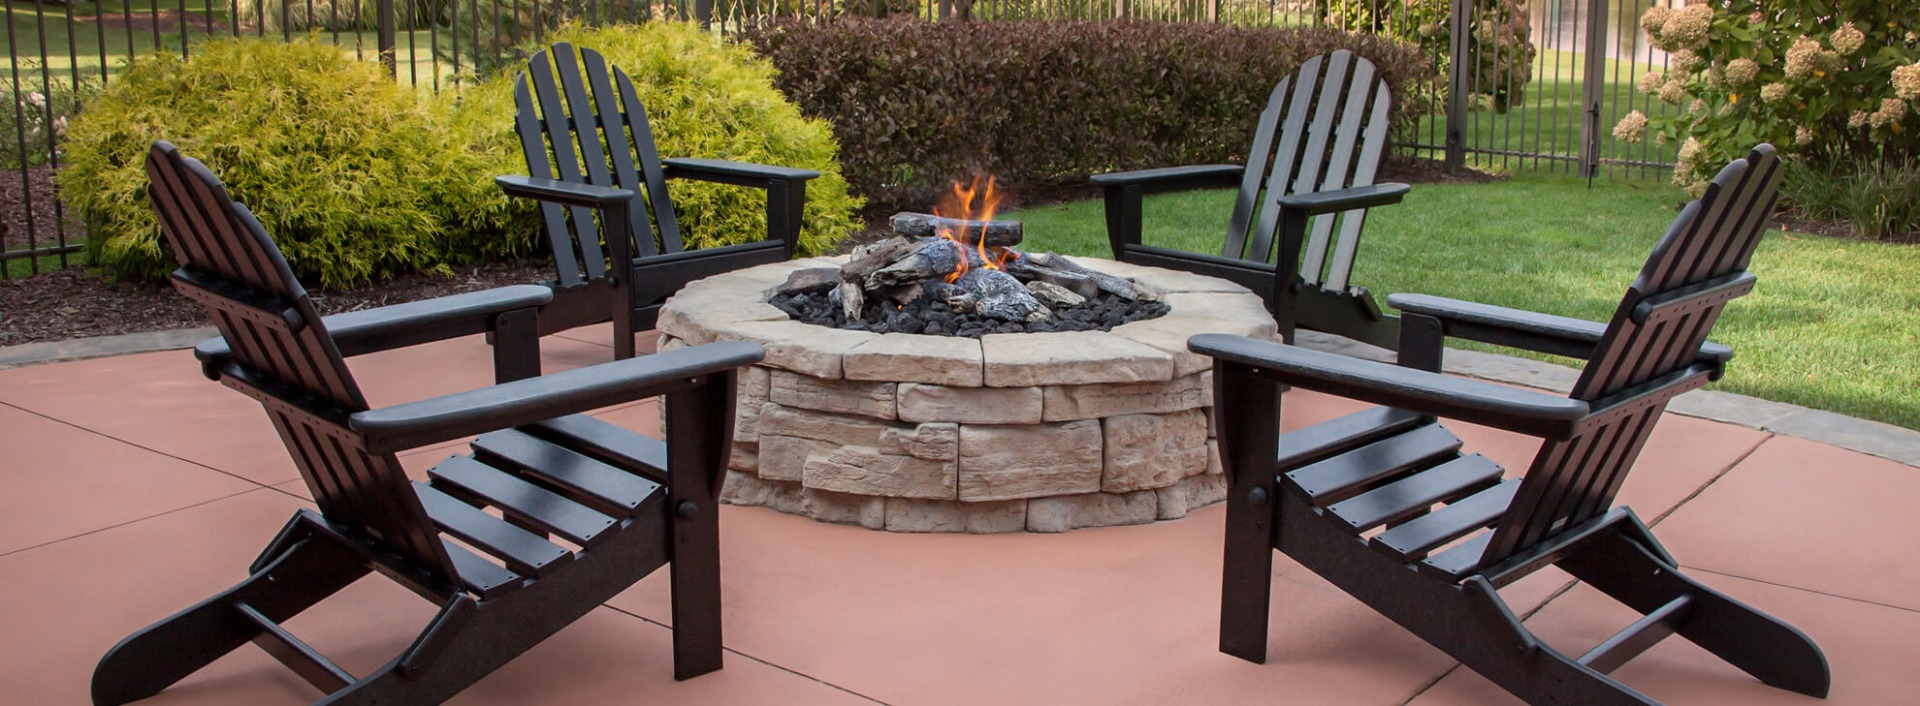 Black Adirondack Chairs around a fire pit